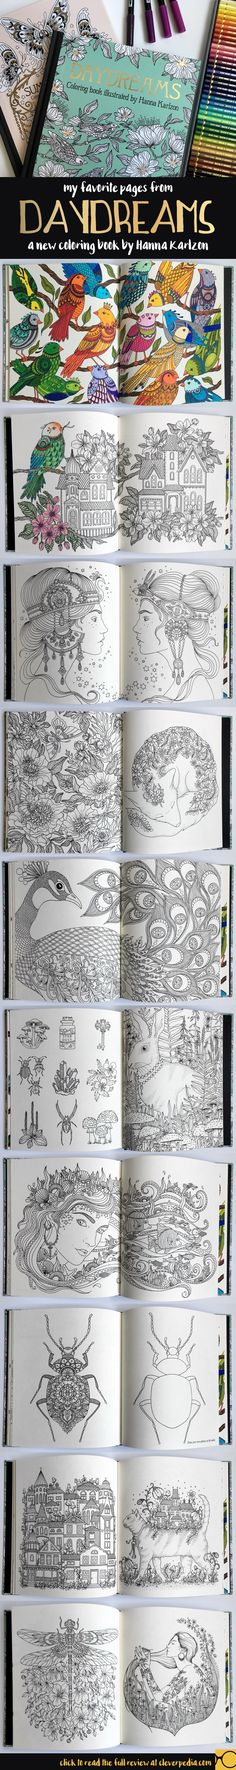 Daydreams Is A Gorgeous New Adult Coloring Book By Swedish Artist Hanna Karlzon Here Are